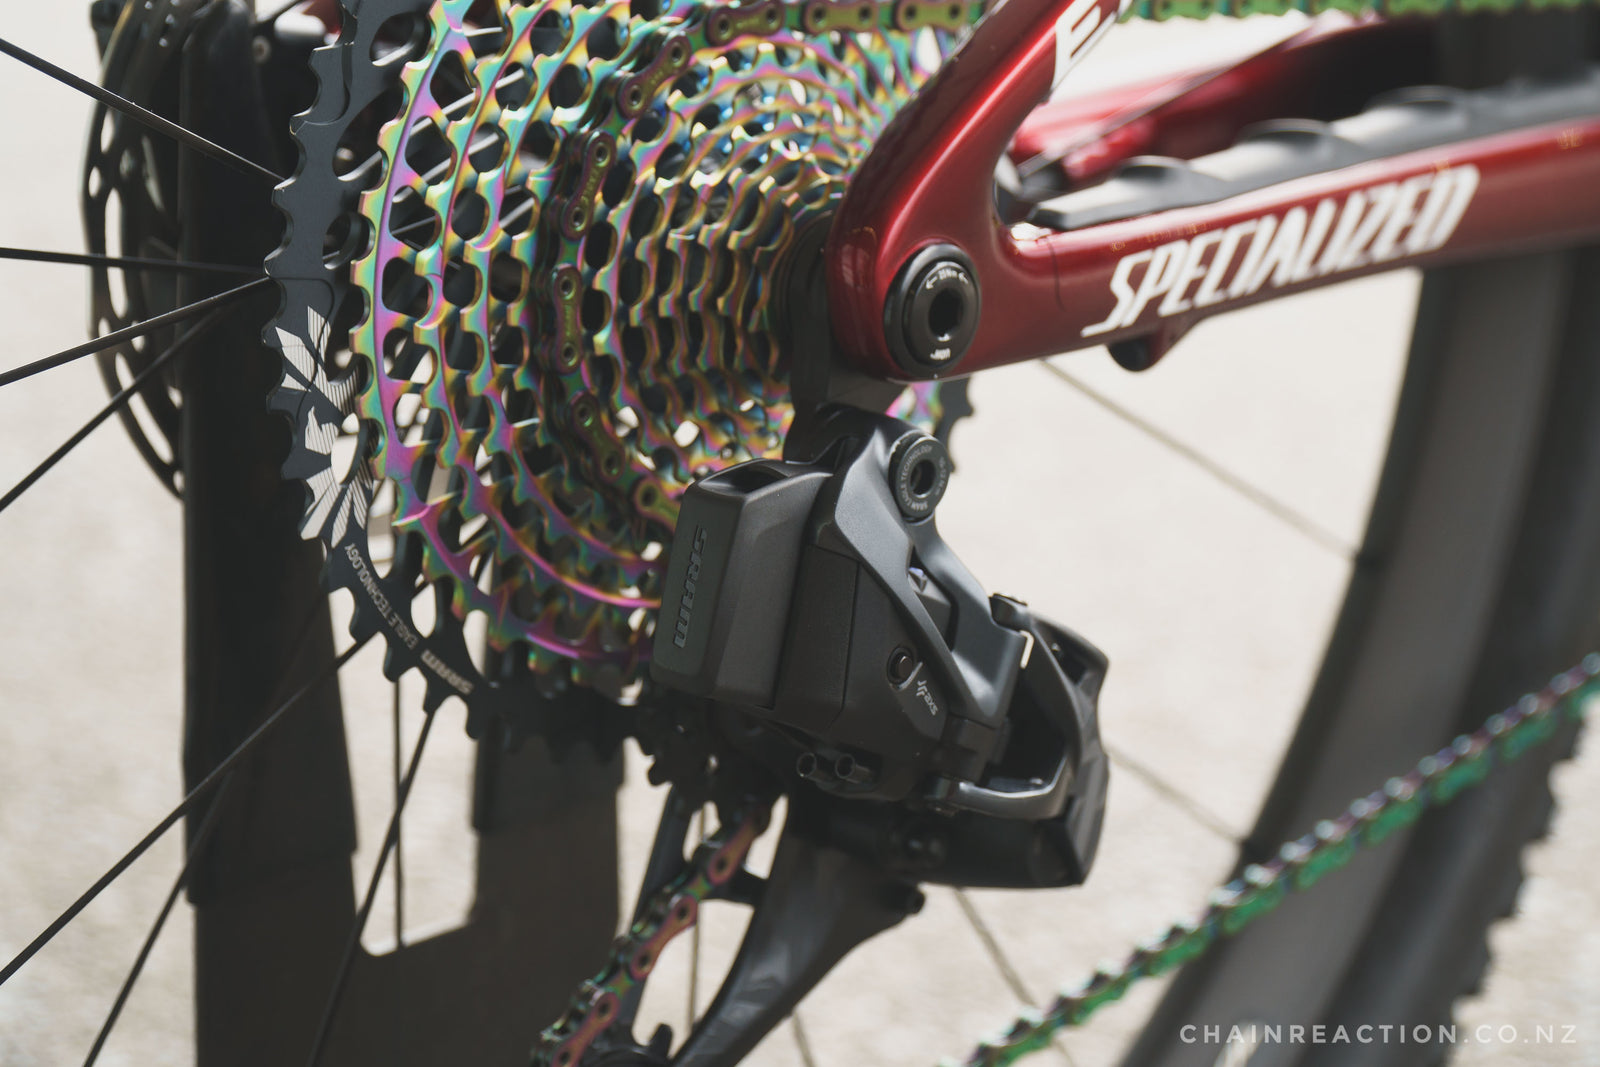 All-New S-Works Epic